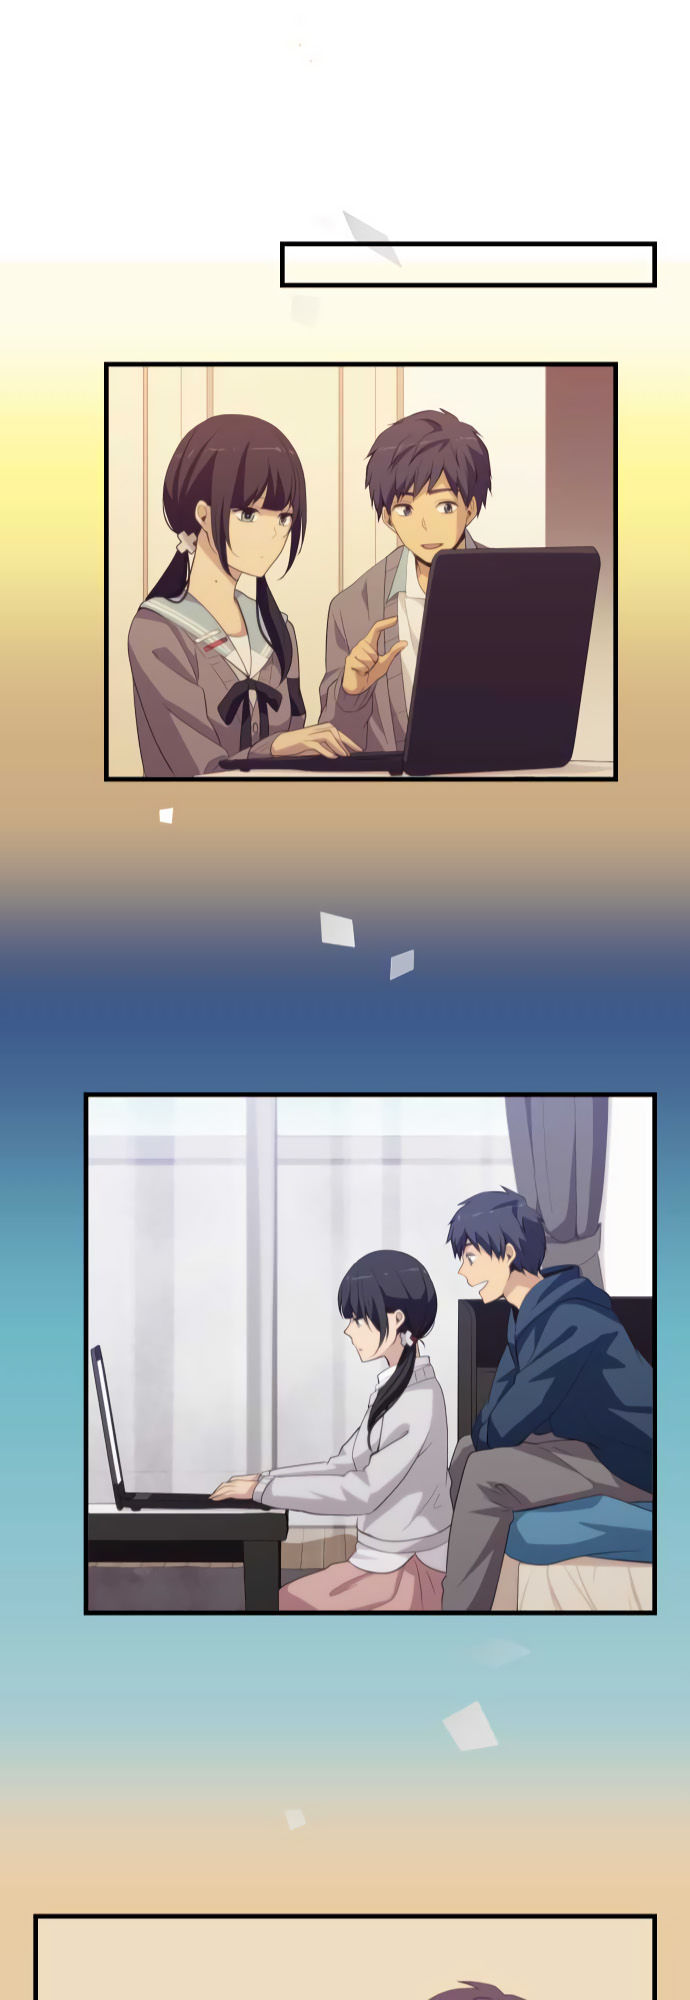 ReLIFE Chapter 206  Online Free Manga Read Image 22